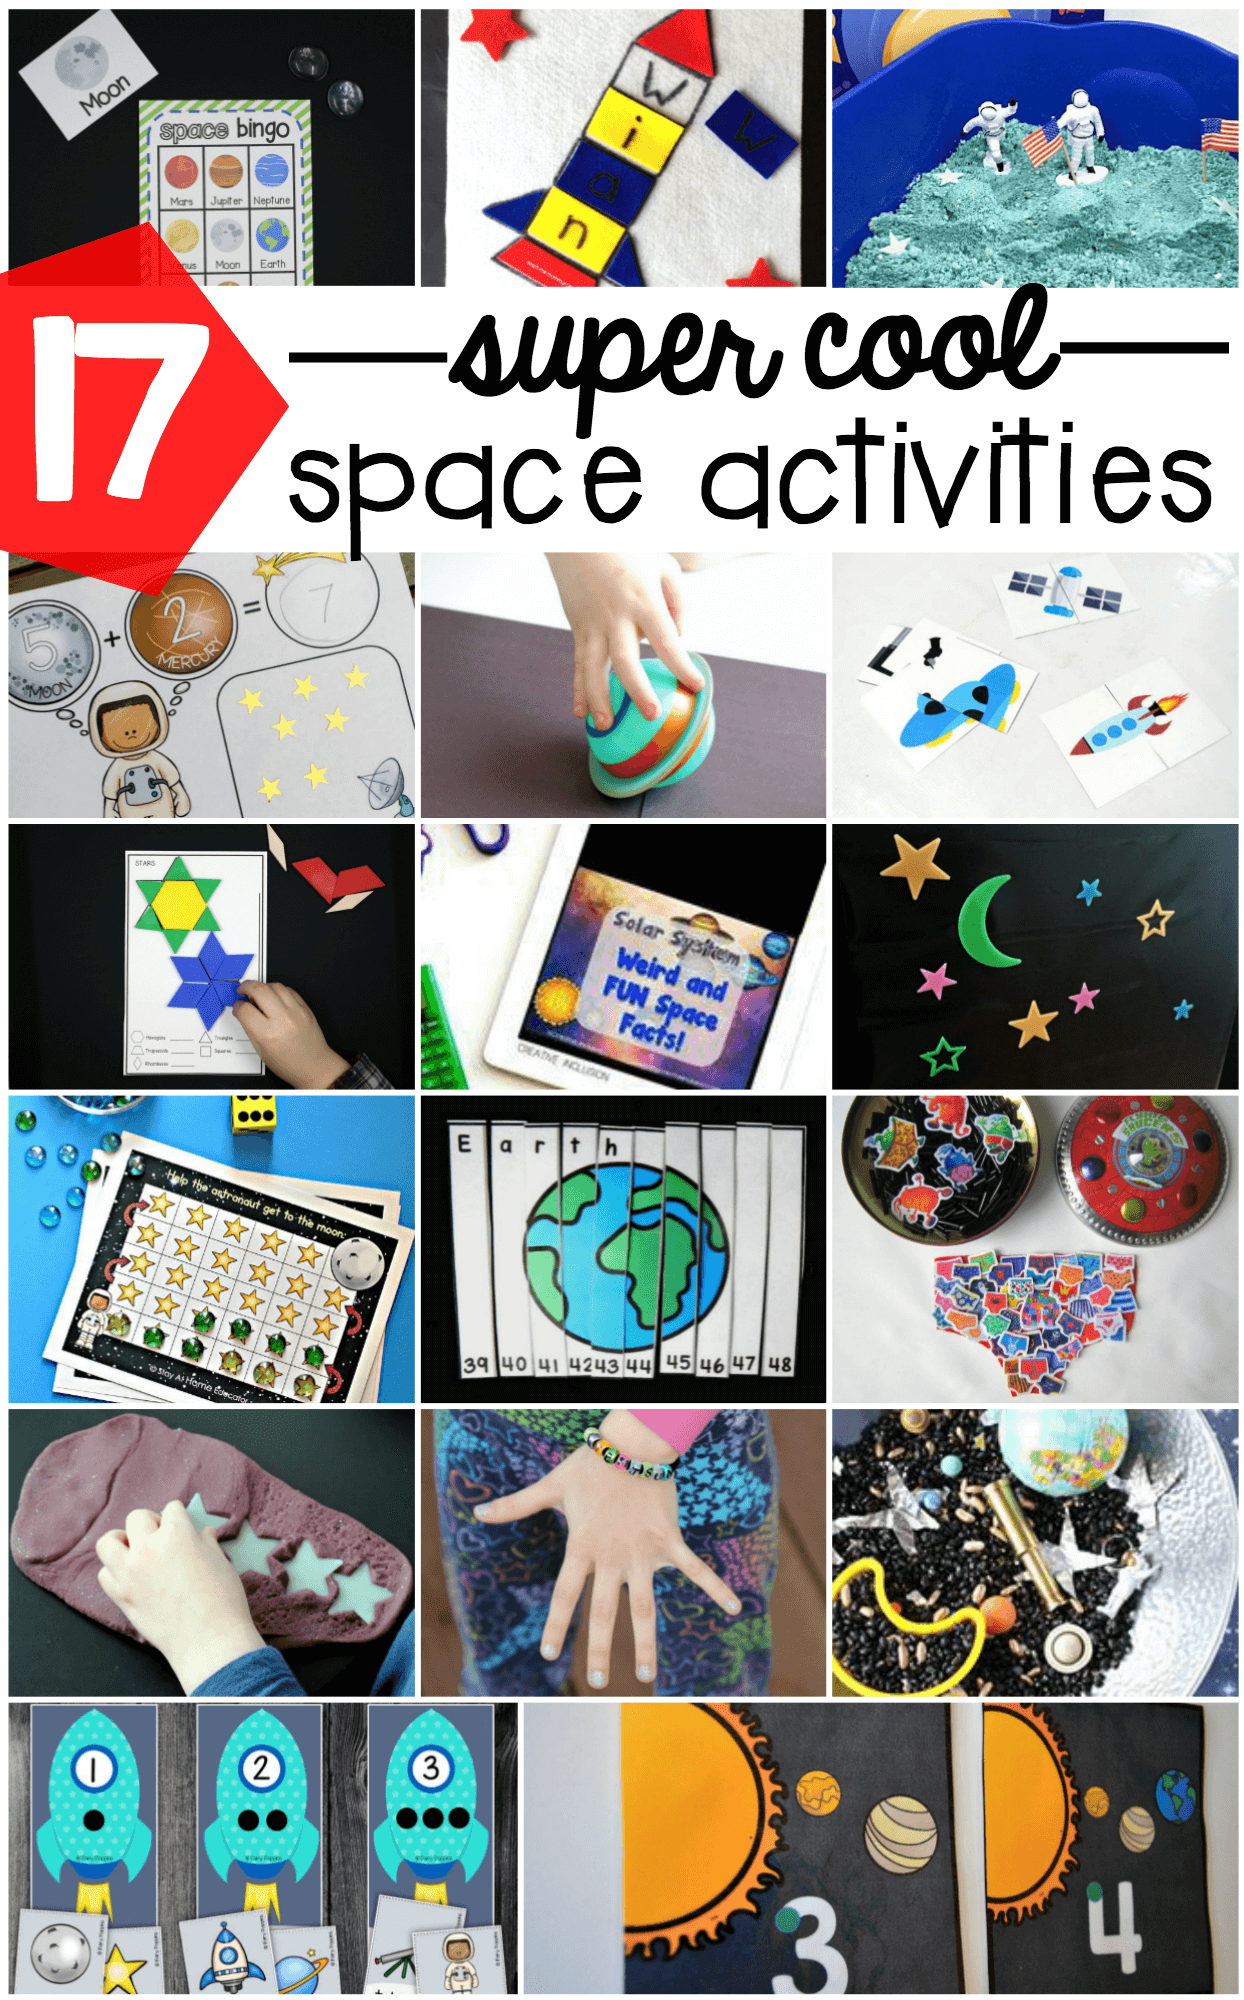 Awesome Space Activities For Kids Math Games Sensory Bins Bingo Name Activities Tons And Tons Of Fun Outer Space Ideas For Preschool Kindergarten And First Grade The Stem Laboratory